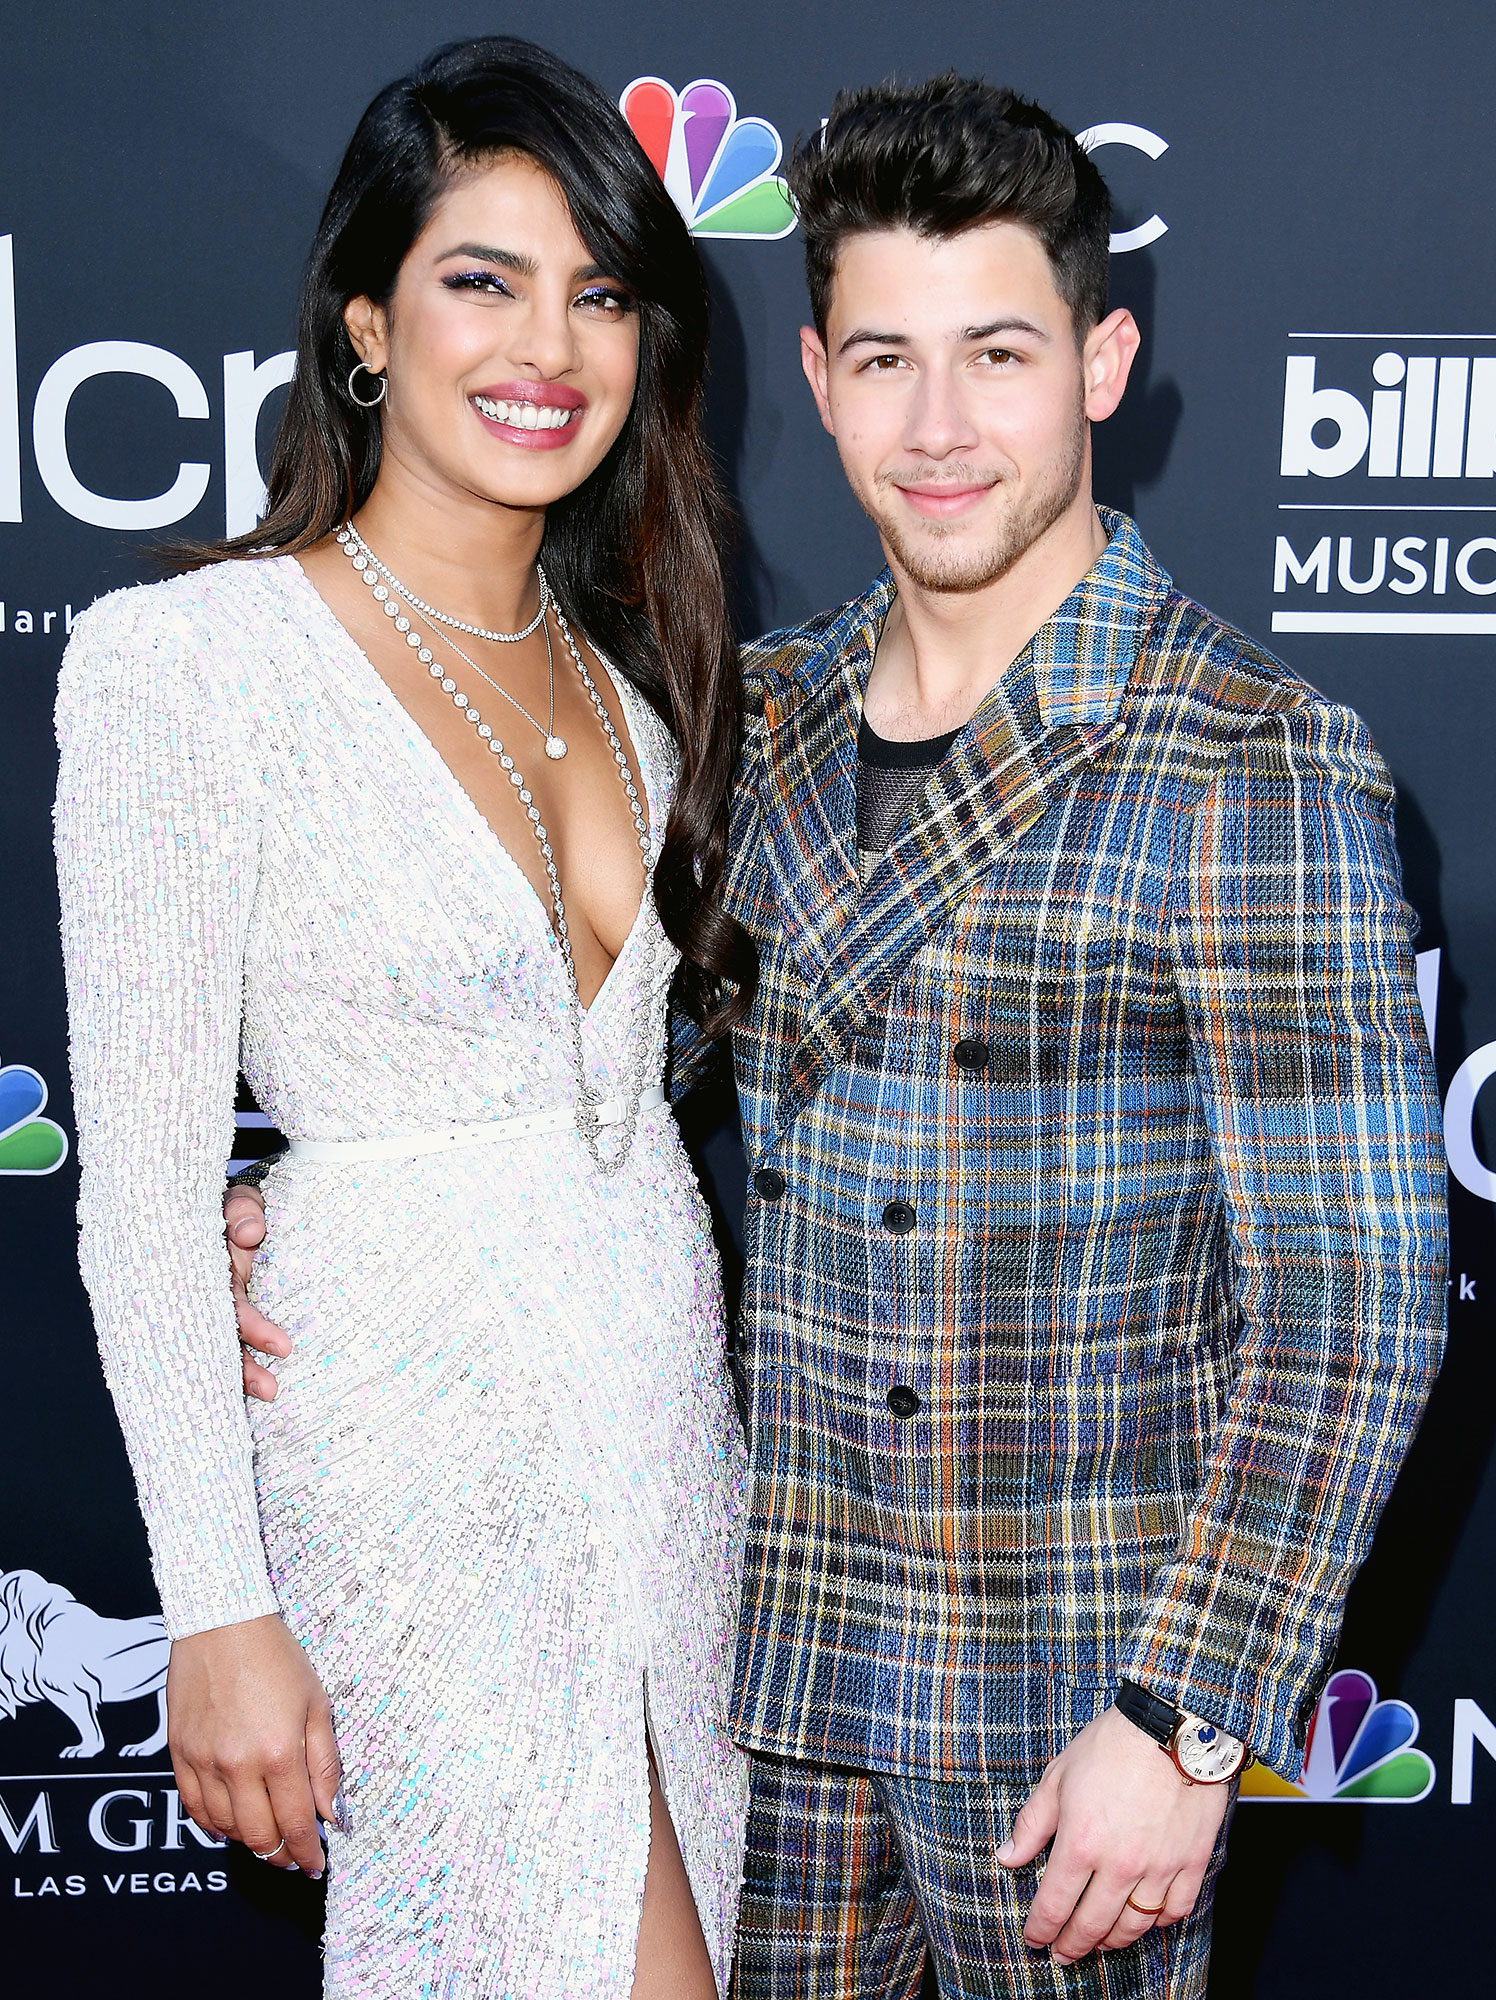 Priyanka Chopra Jonas Diversity Skin Care Unwind Nick Jonas - Priyanka Chopra and Nick Jonas attend the Billboard Music Awards at MGM Grand Garden Arena on May 1, 2019 in Las Vegas.